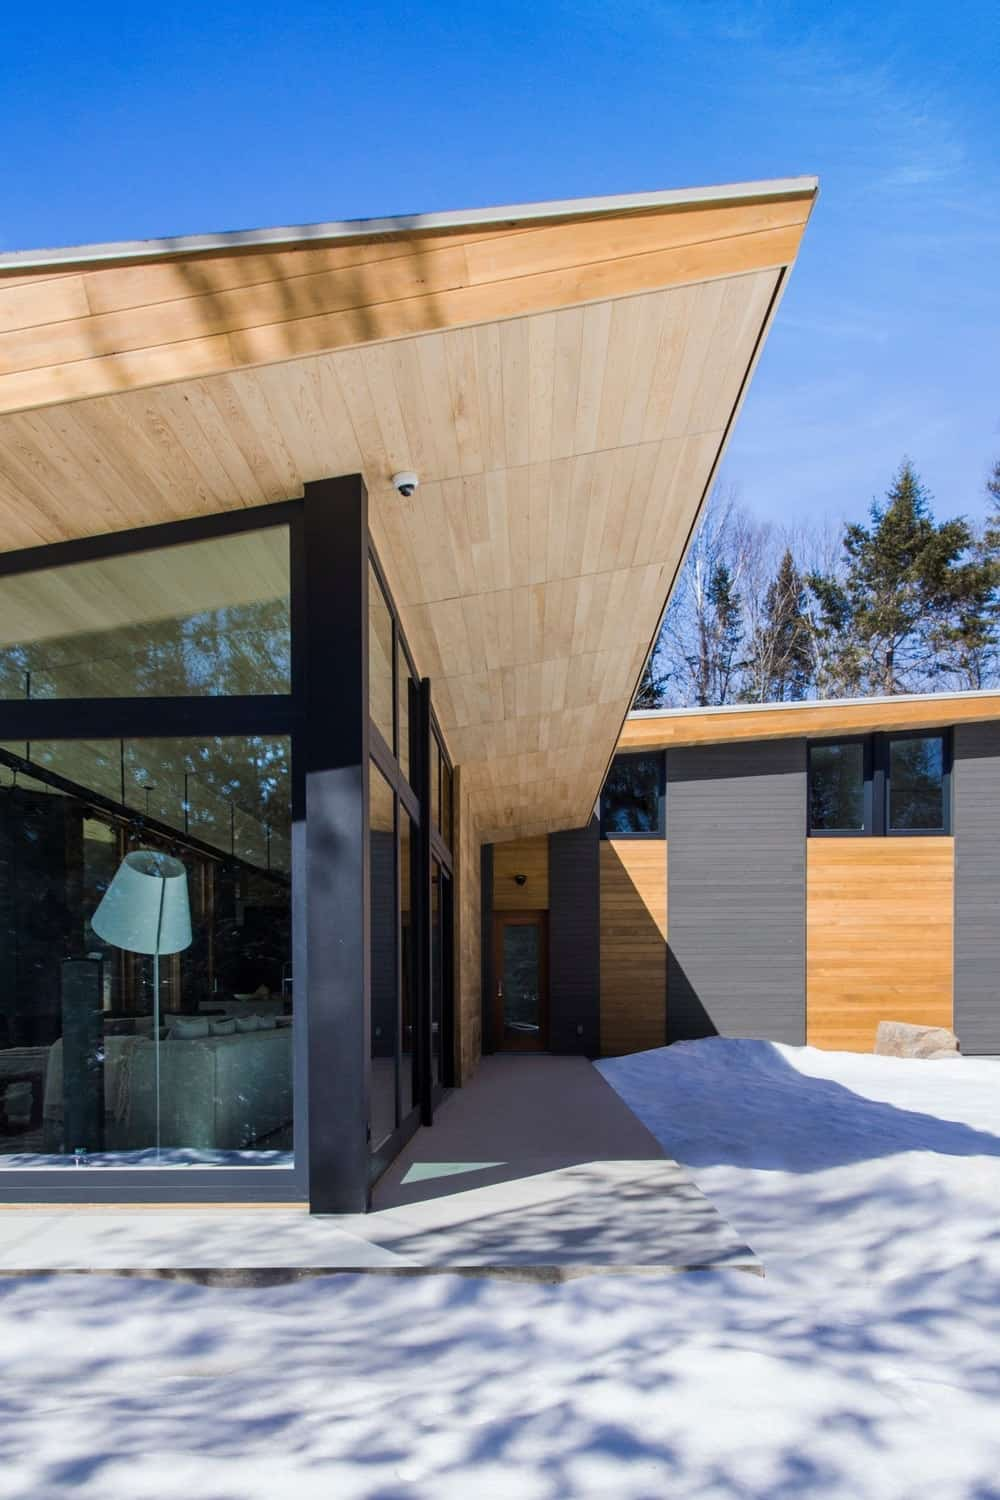 Another look of the house from outside showcasing the hardwood and glass architecture. Photo Credit: David Marien-Landry